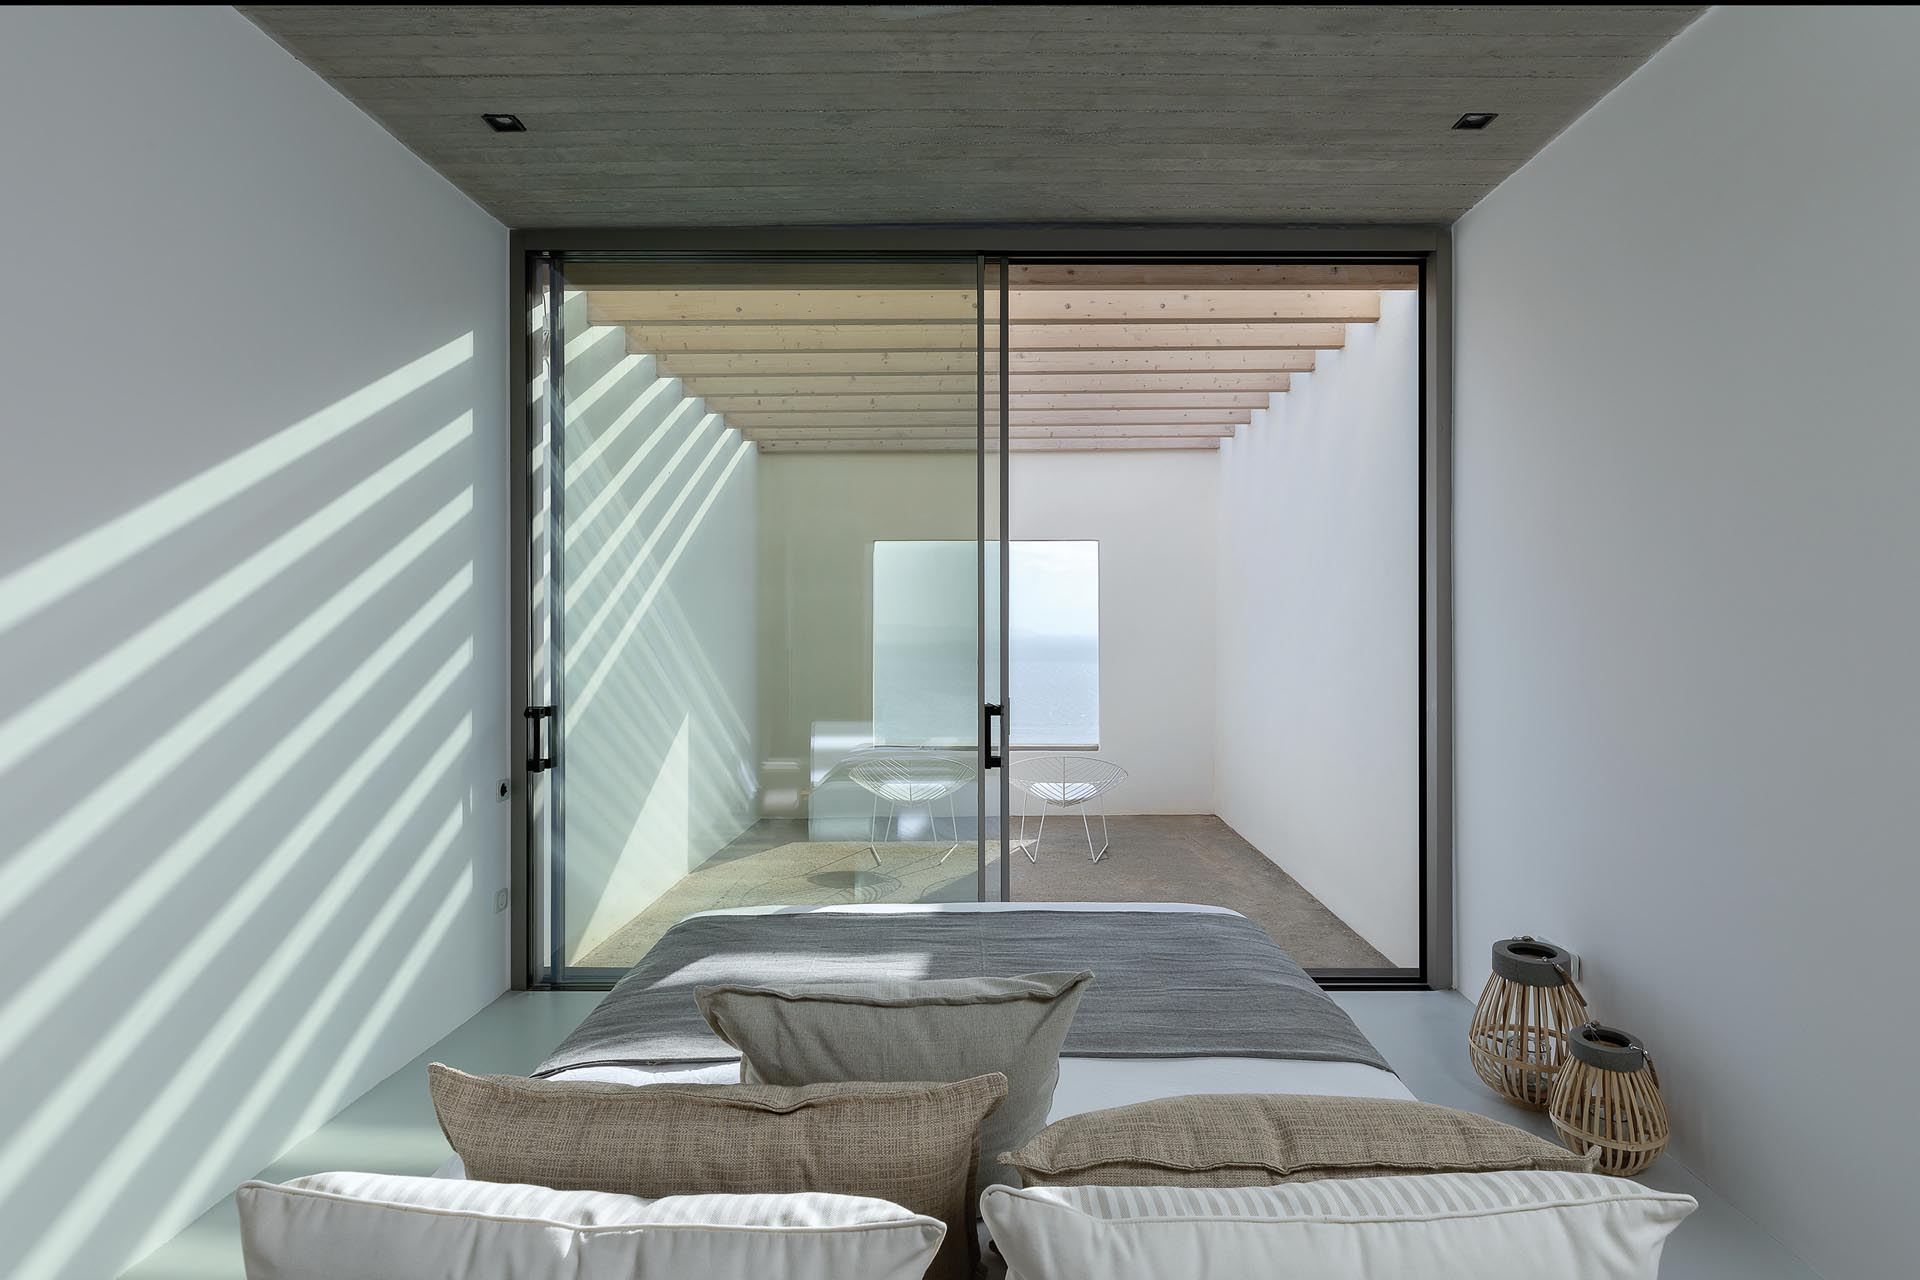 A modern bedroom with its own private outdoor patio.